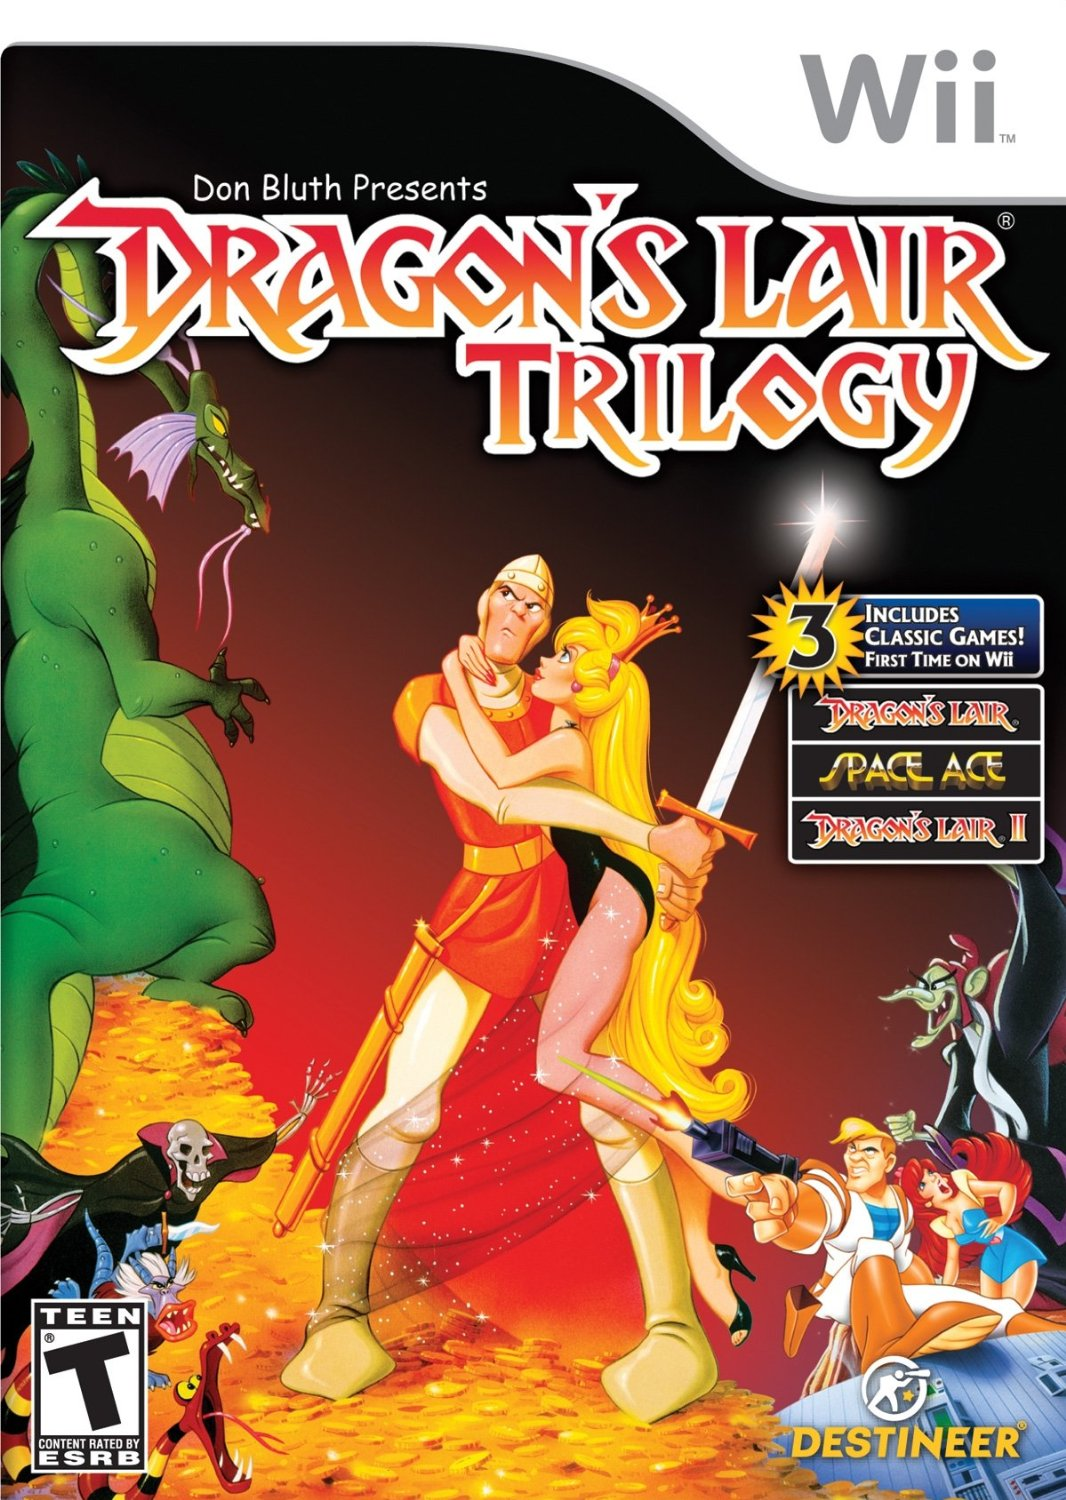 Brett weiss words of wonder collecting for dragon 39 s lair for Dragon s lair